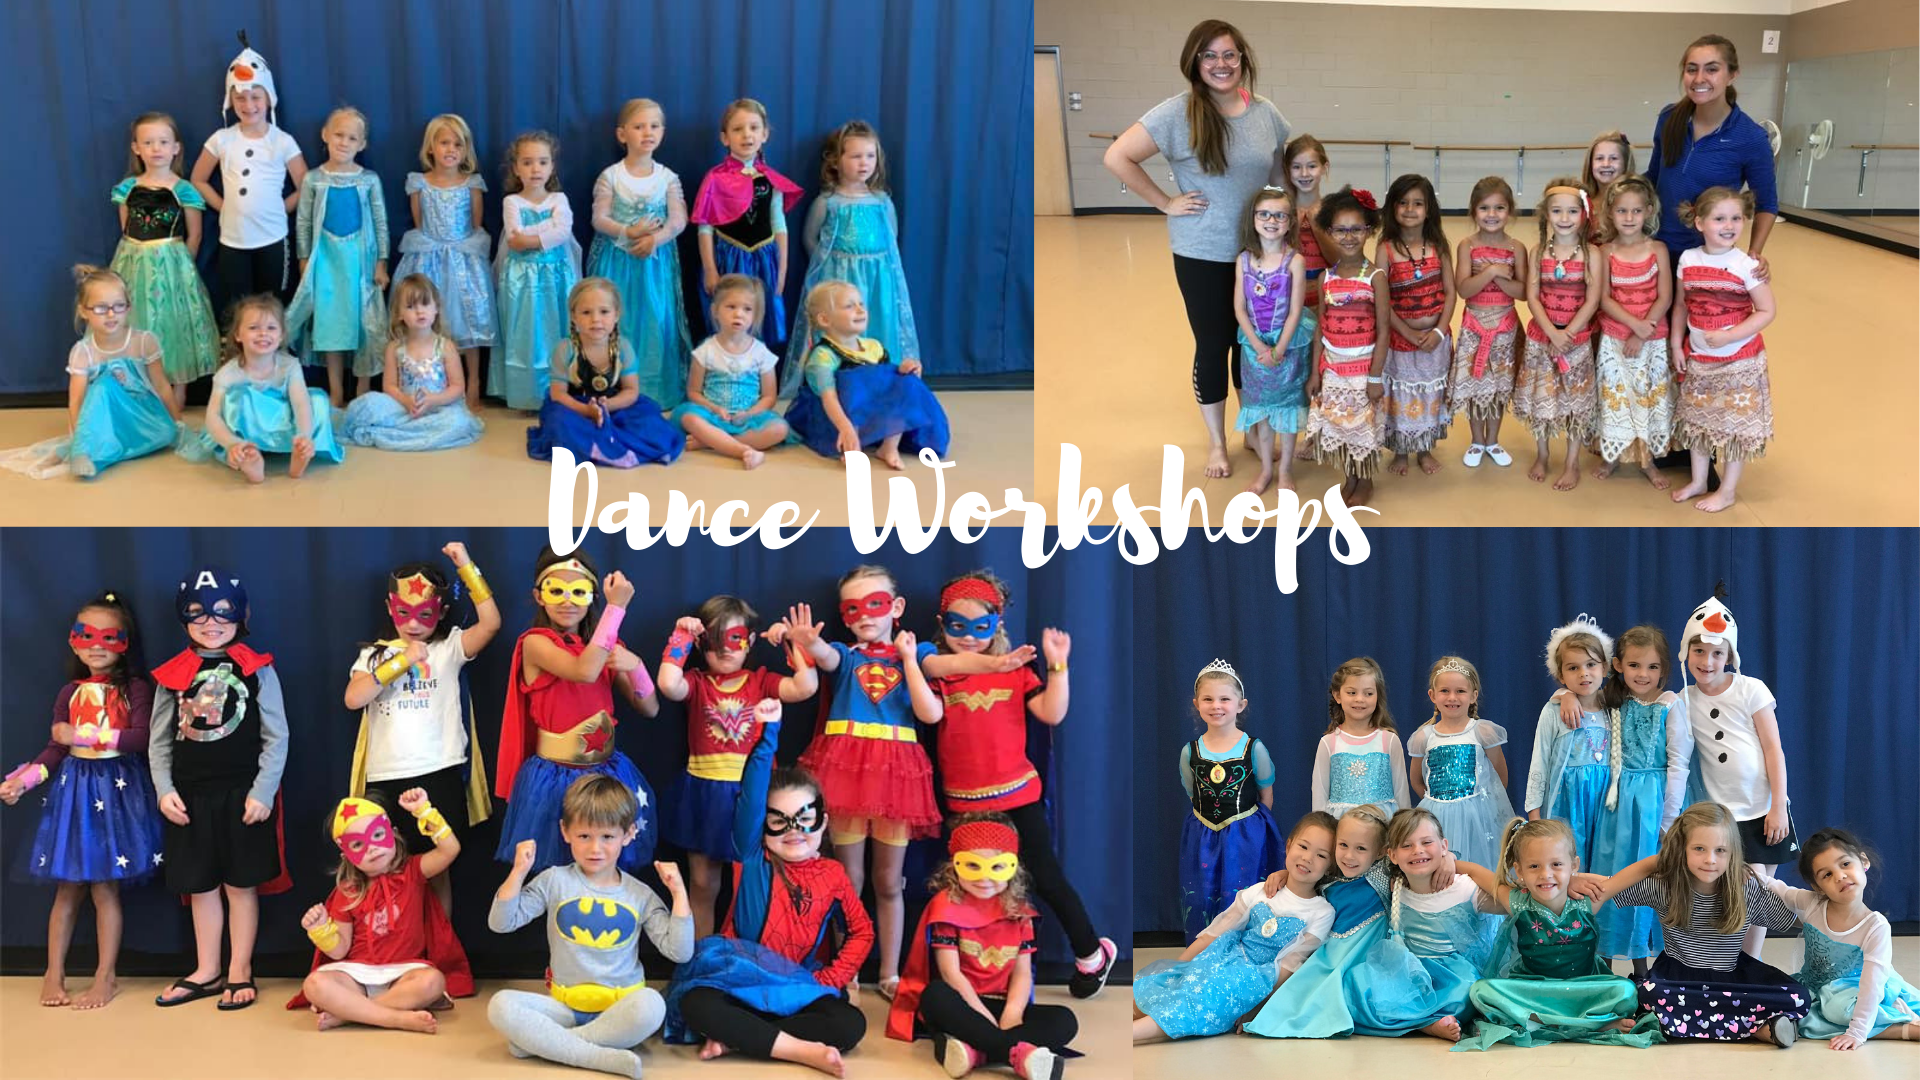 Children in costumes for a dance workshop